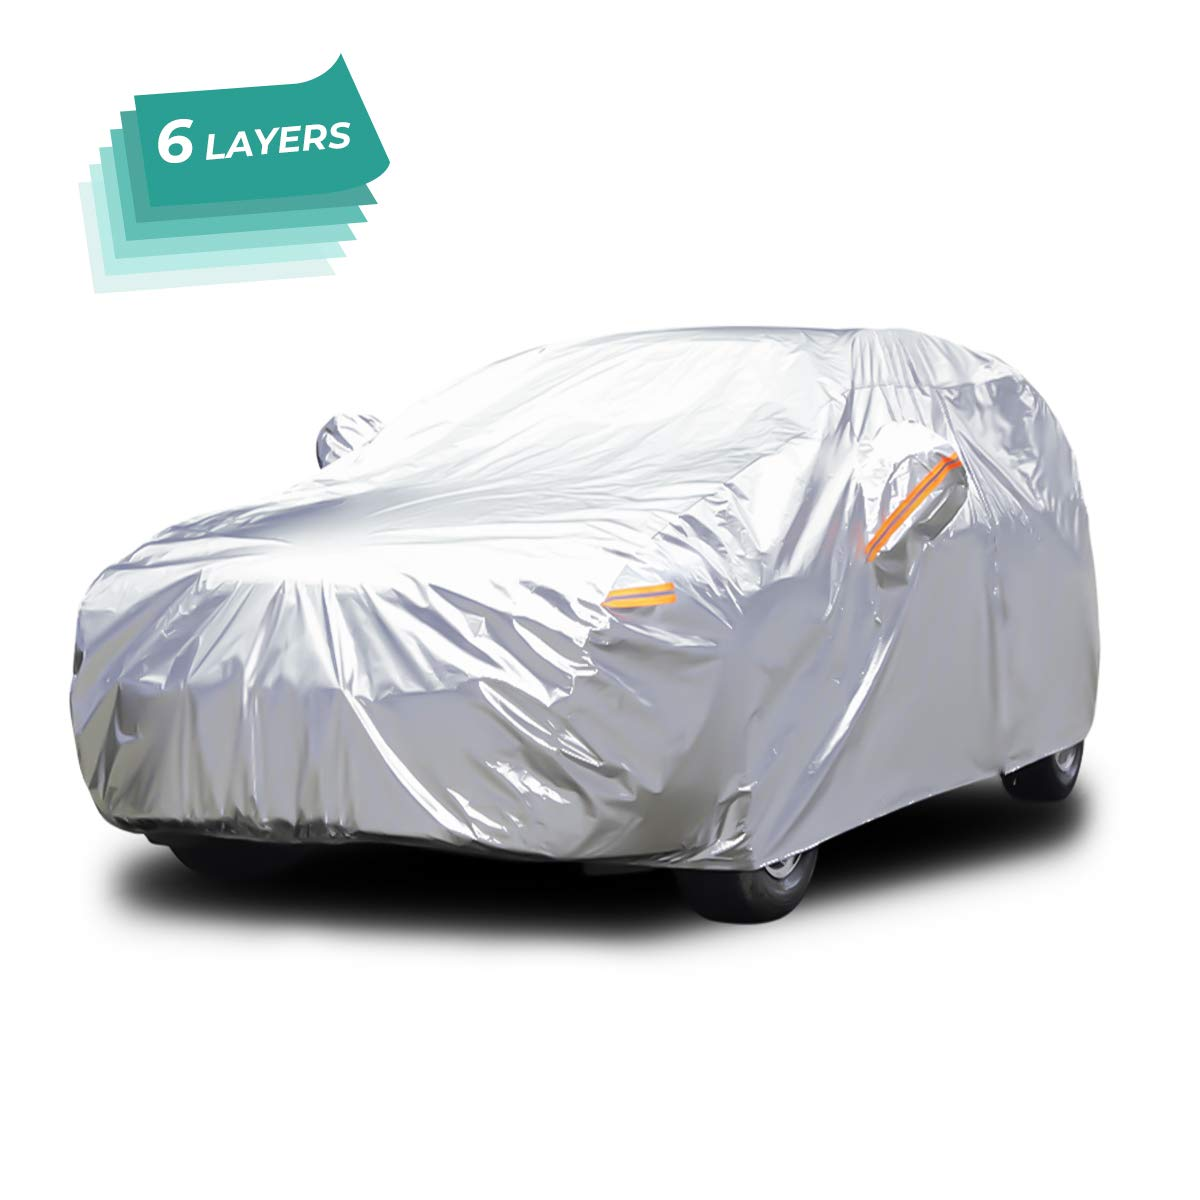 Audew All Weather Car Cover 6 Layer Breathable UV Protection Waterproof Dustproof Universal Fit Full Car Covers for SUV, Jeep XL(190' ' -201' ' )